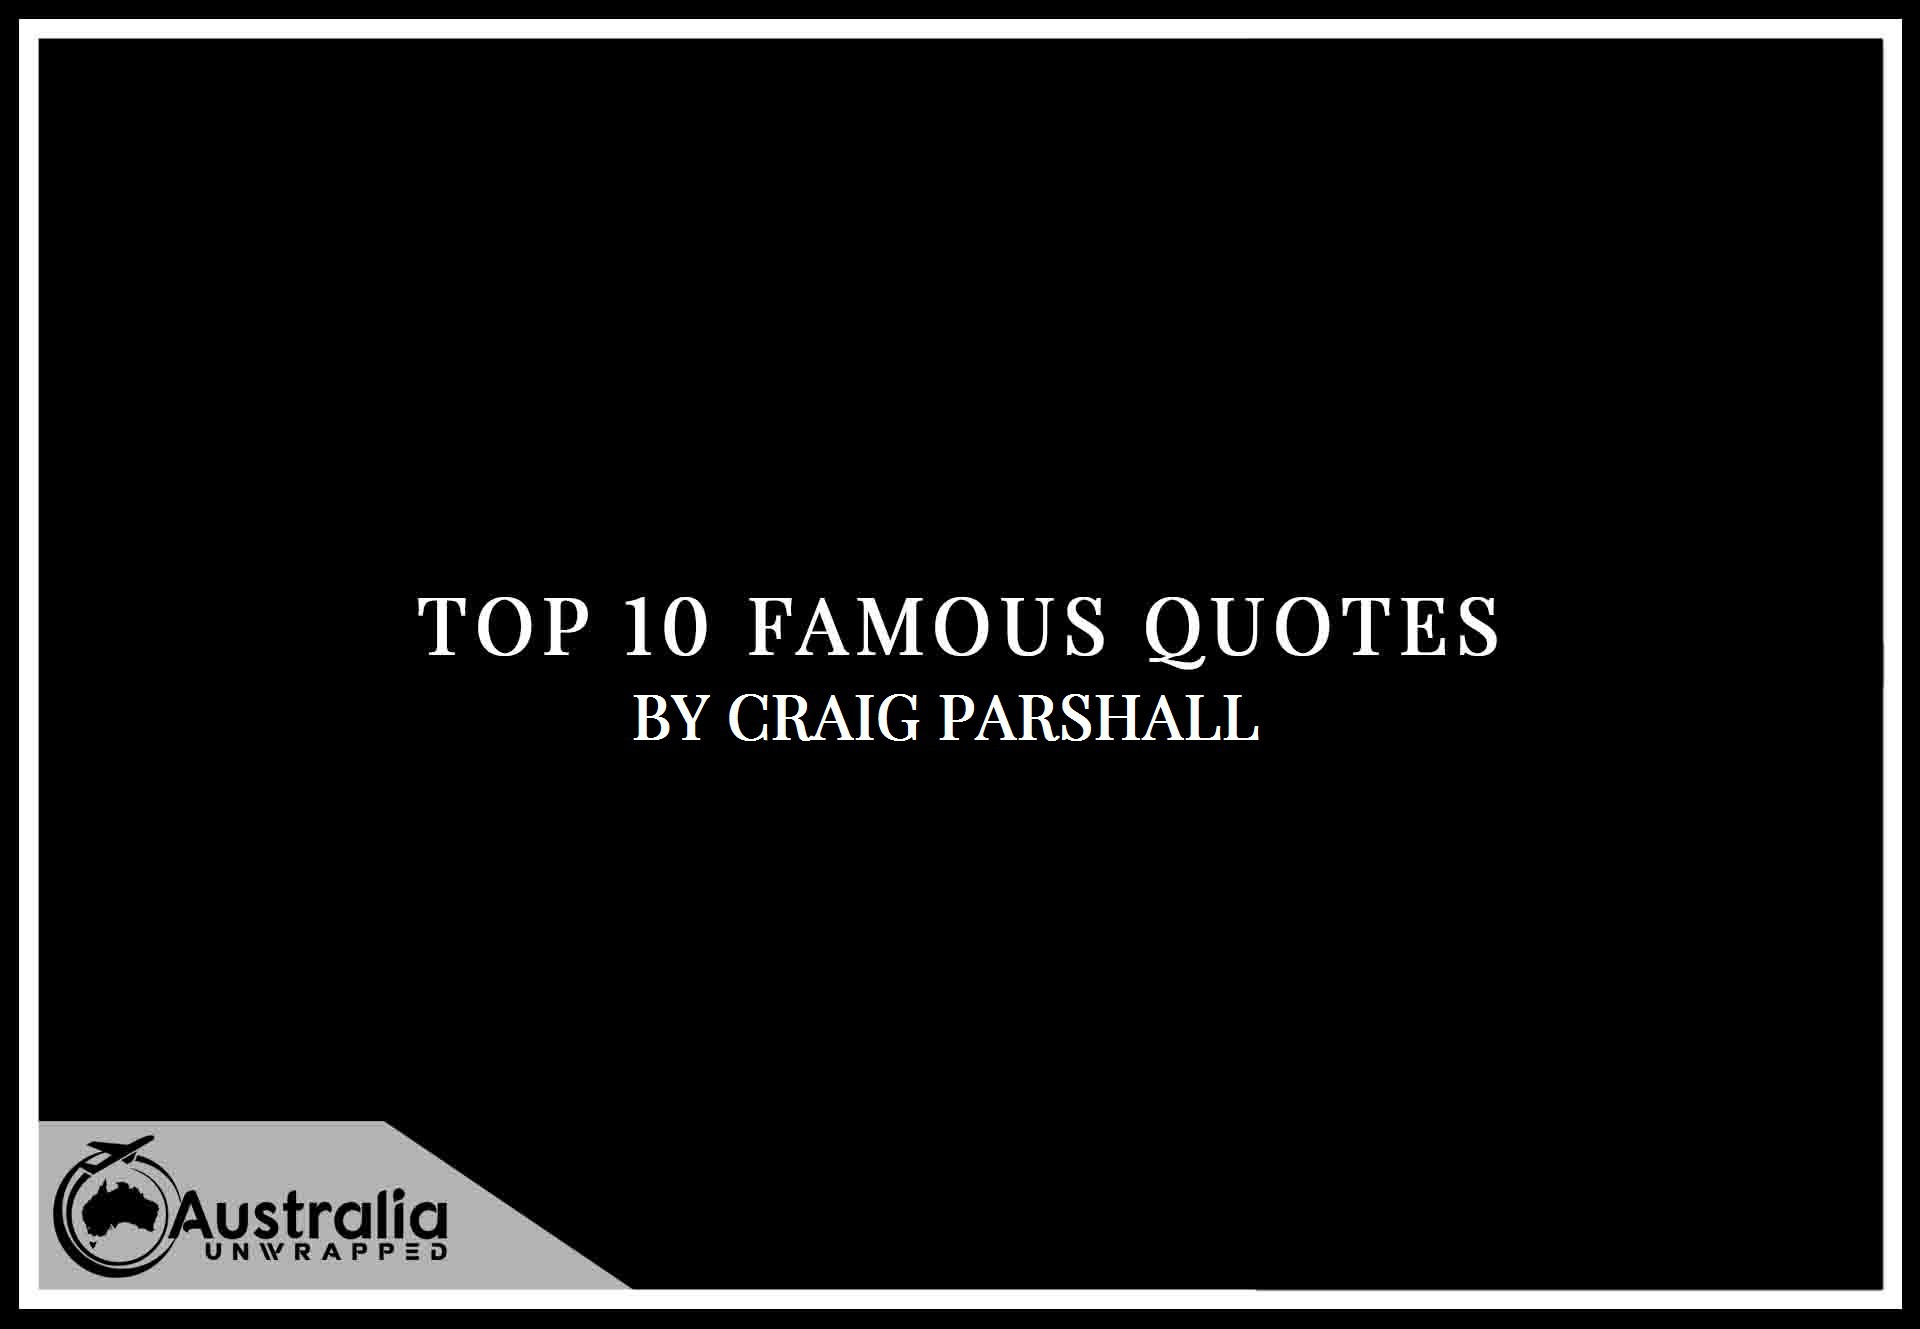 Craig Parshall's Top 10 Popular and Famous Quotes